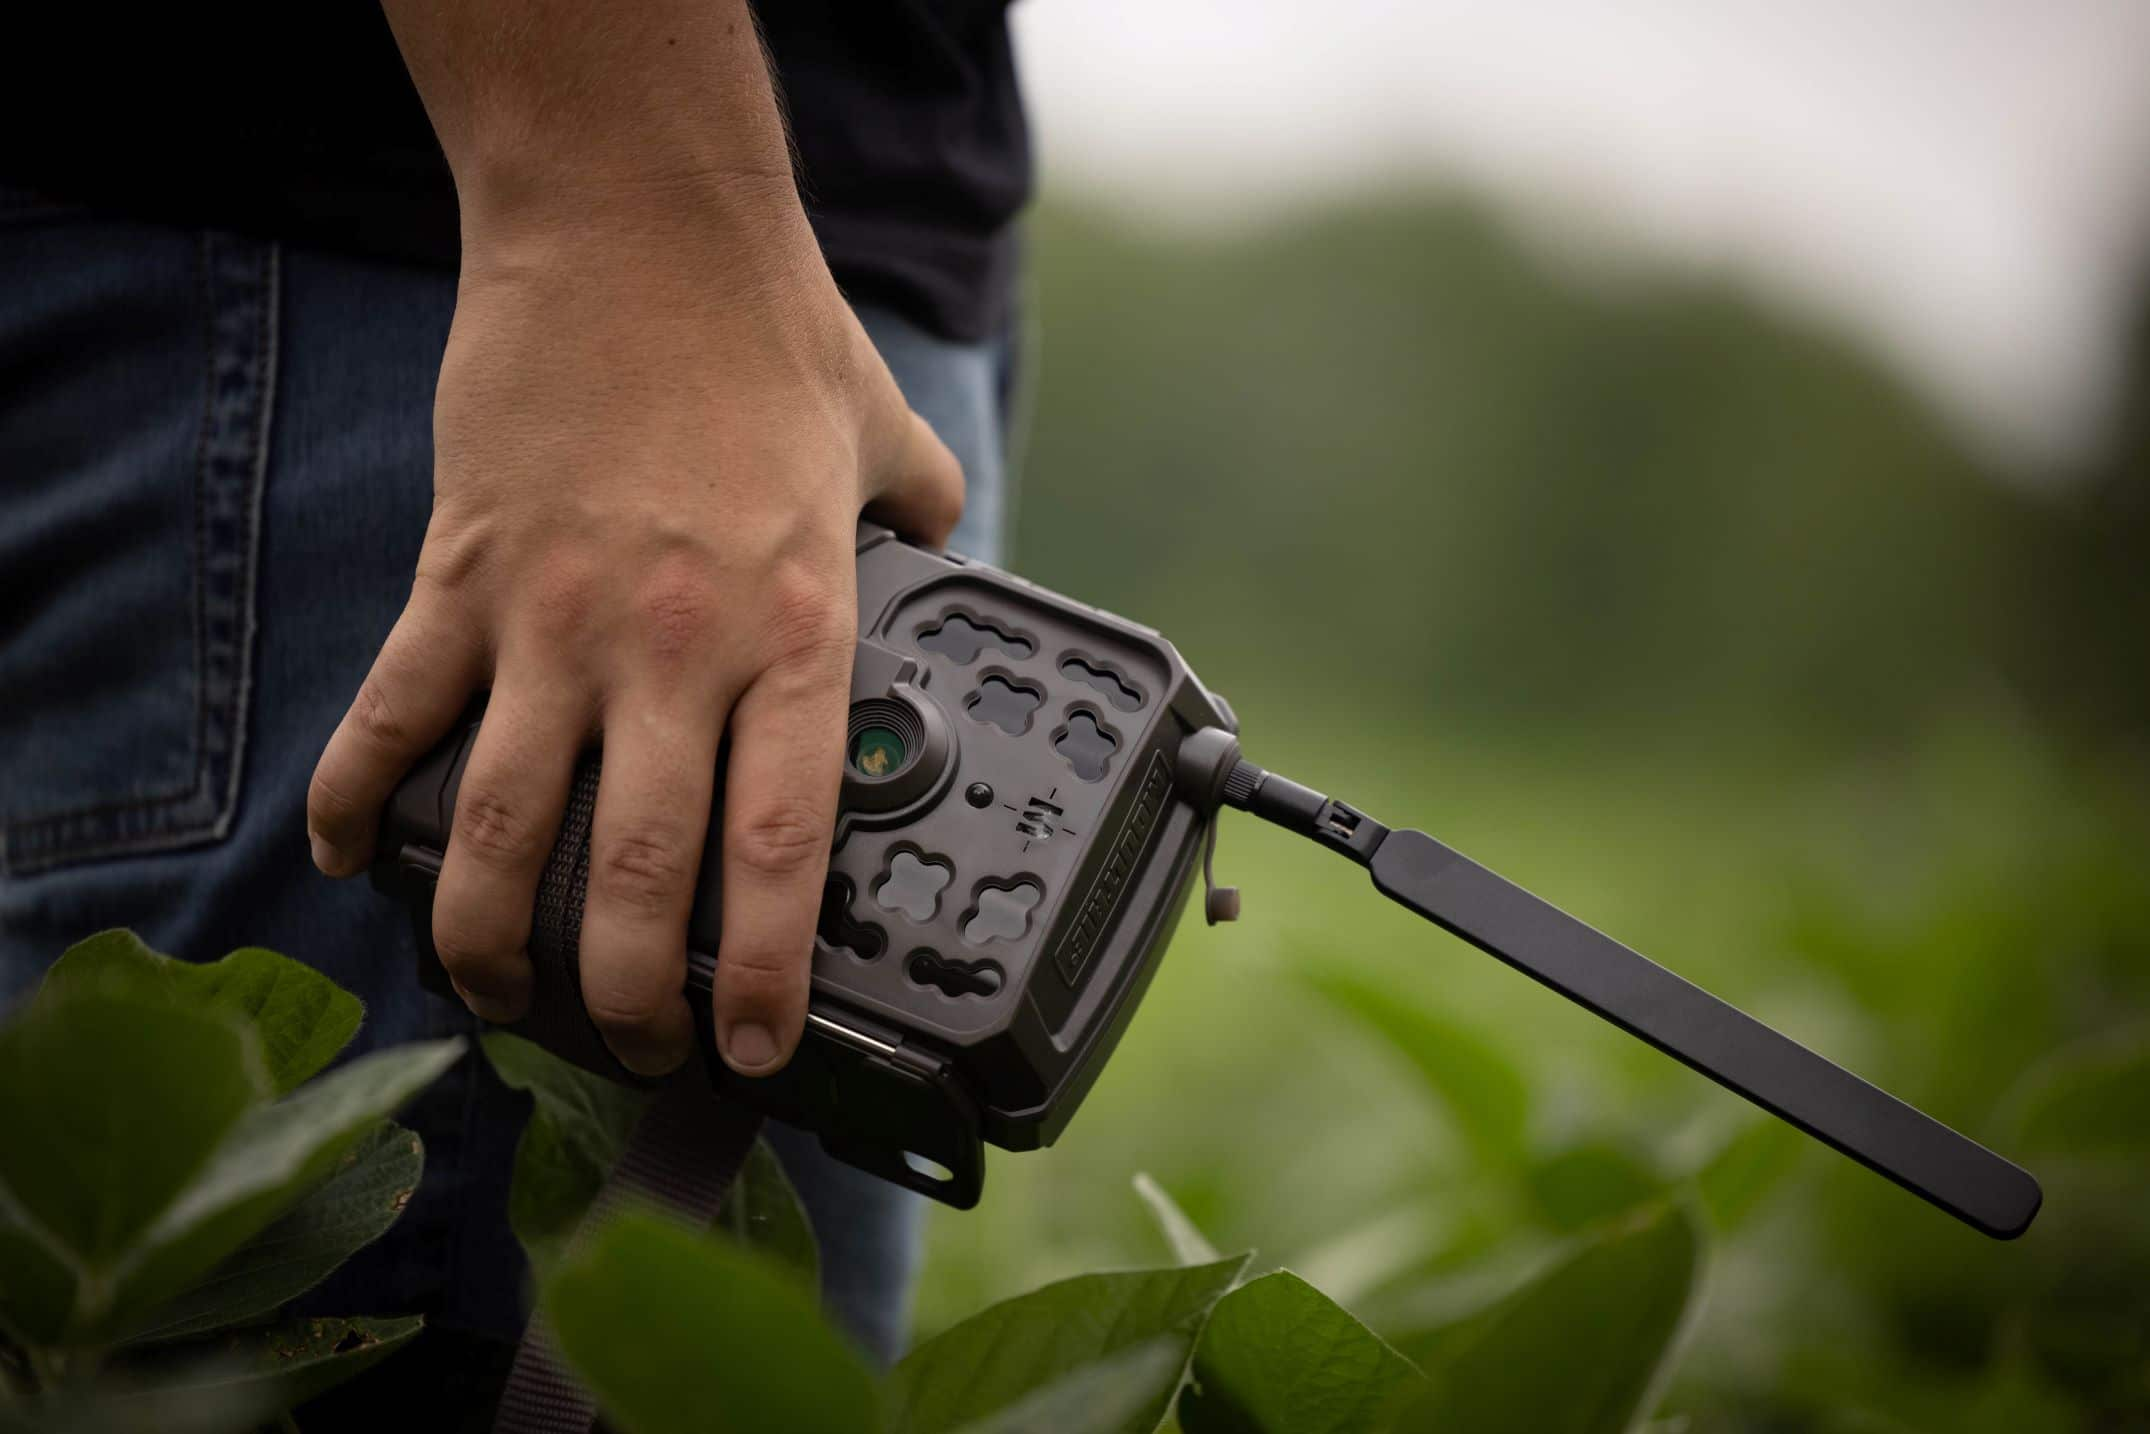 common-trail-camera-mistakes-and-fixes